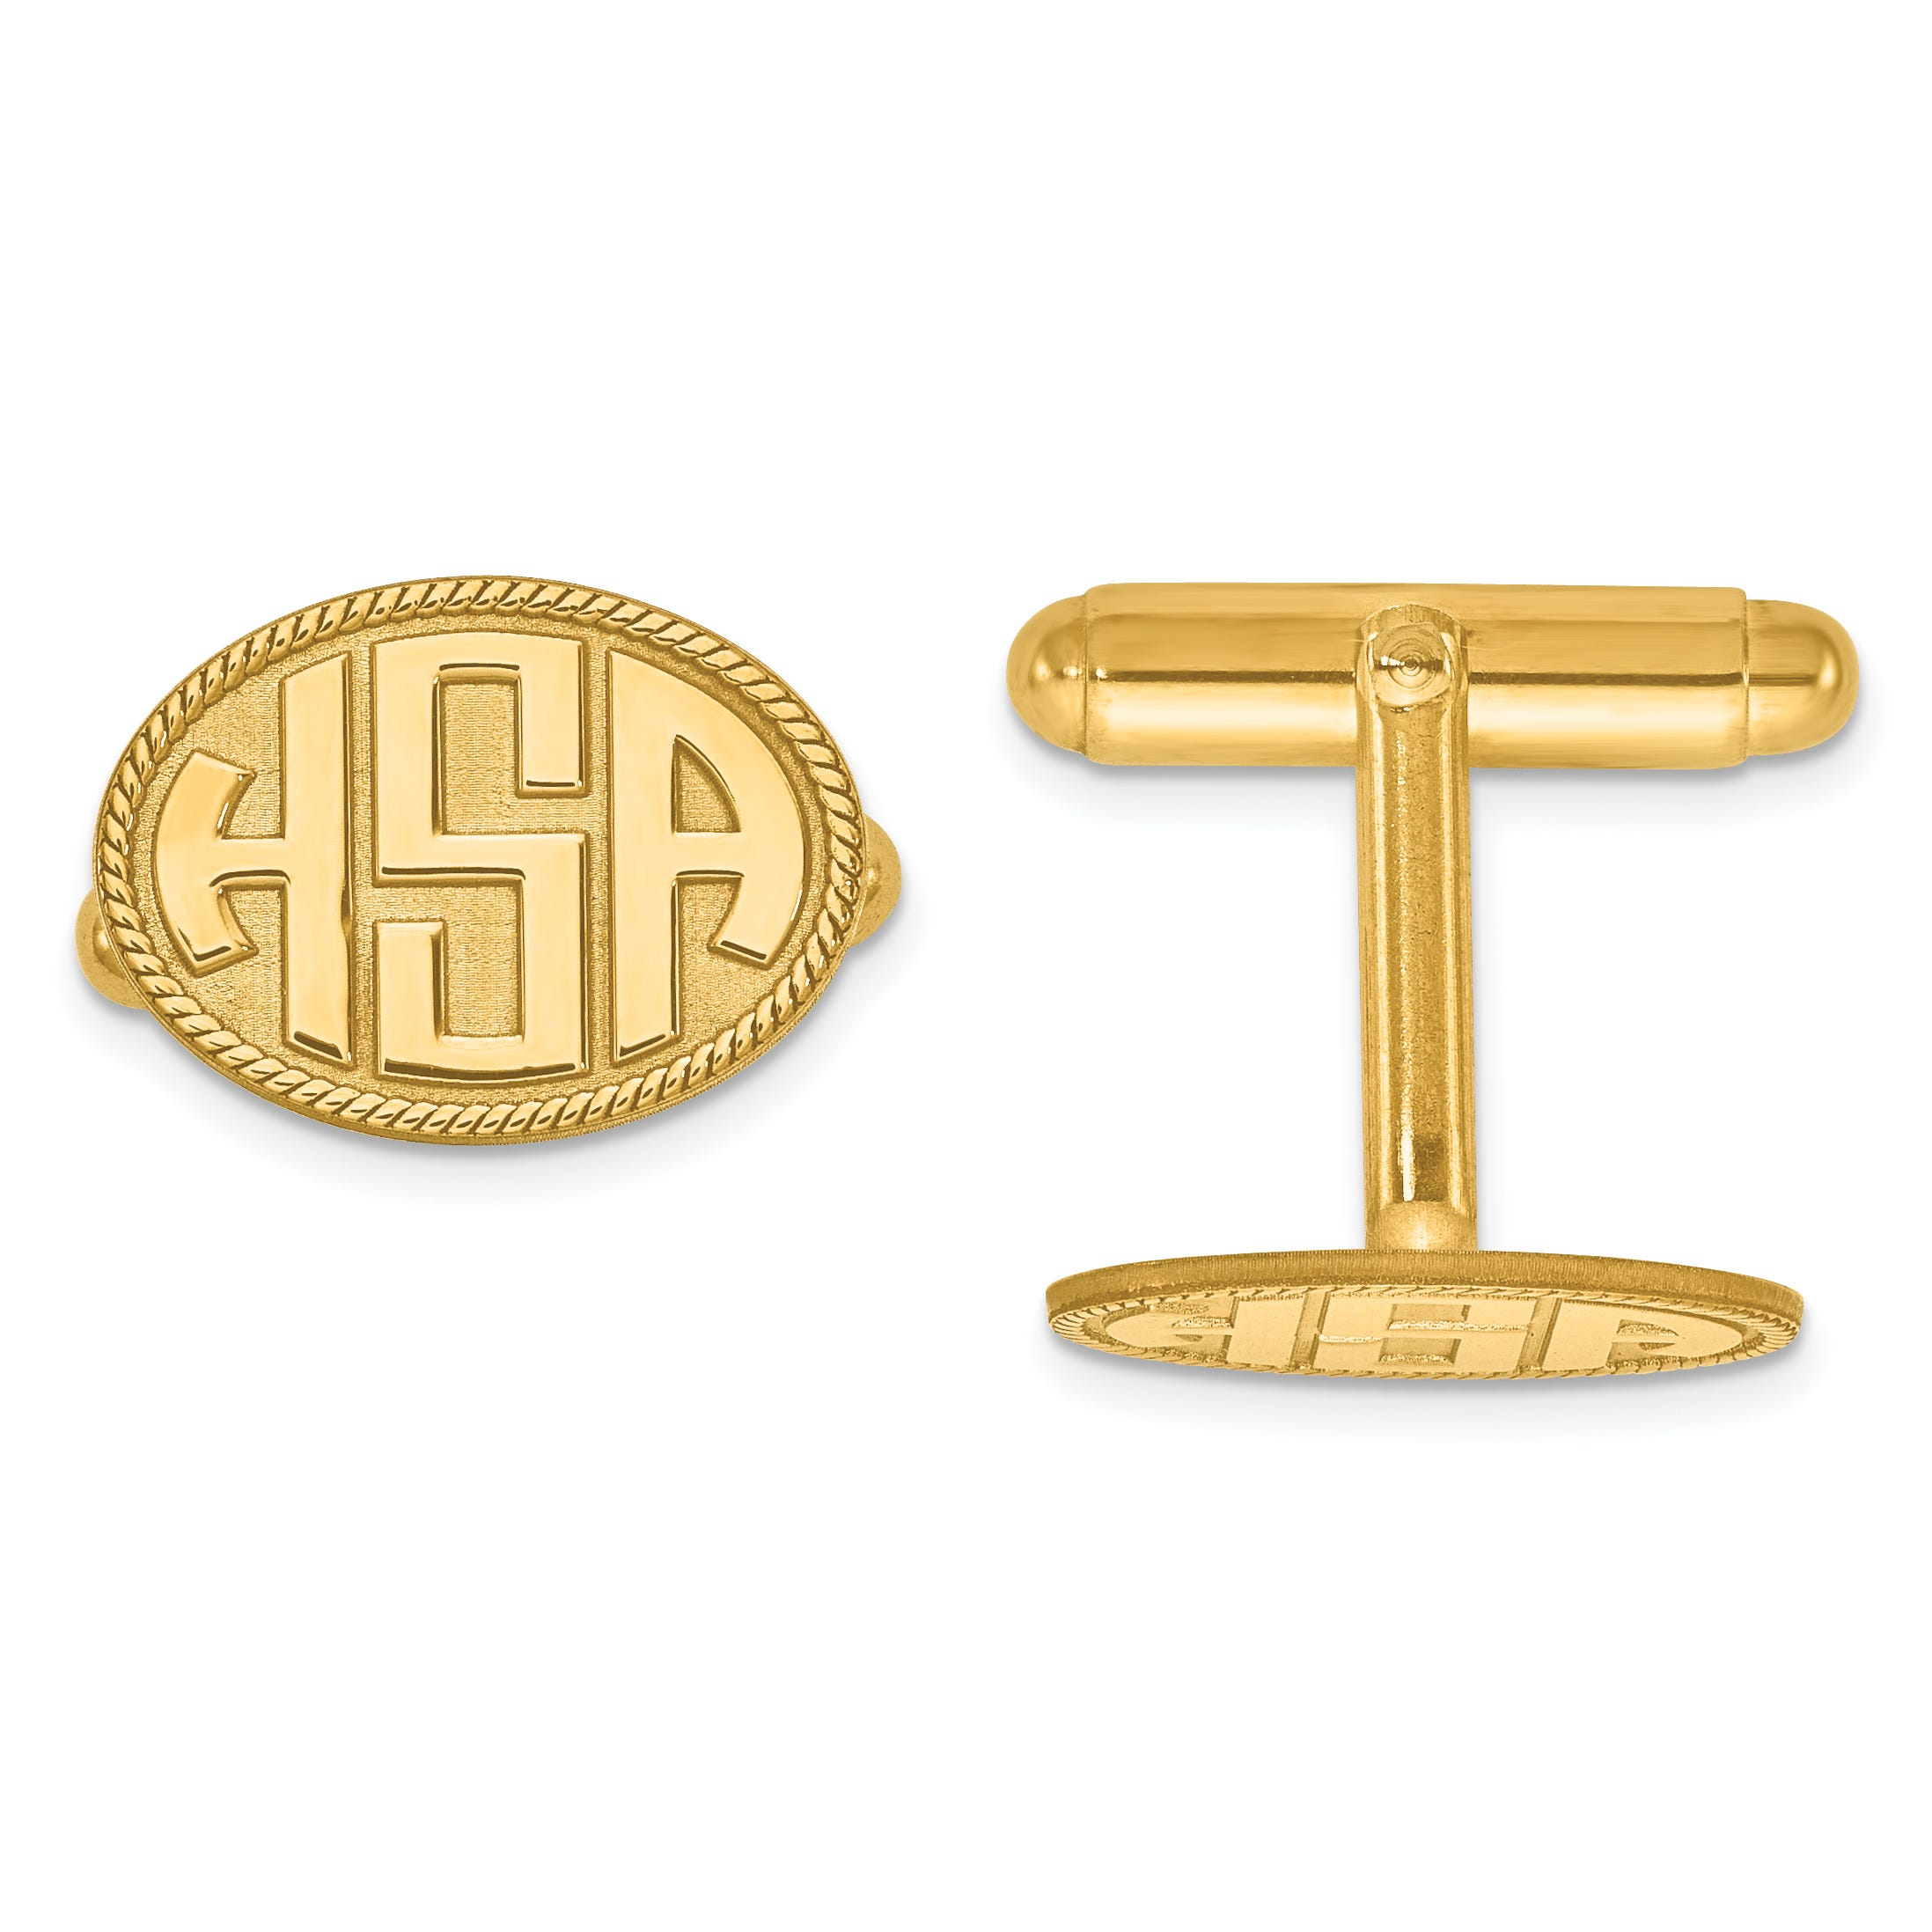 Raised Letters Oval Border Monogram Cuff Links in 14k Yellow Gold (up to 3 letters)